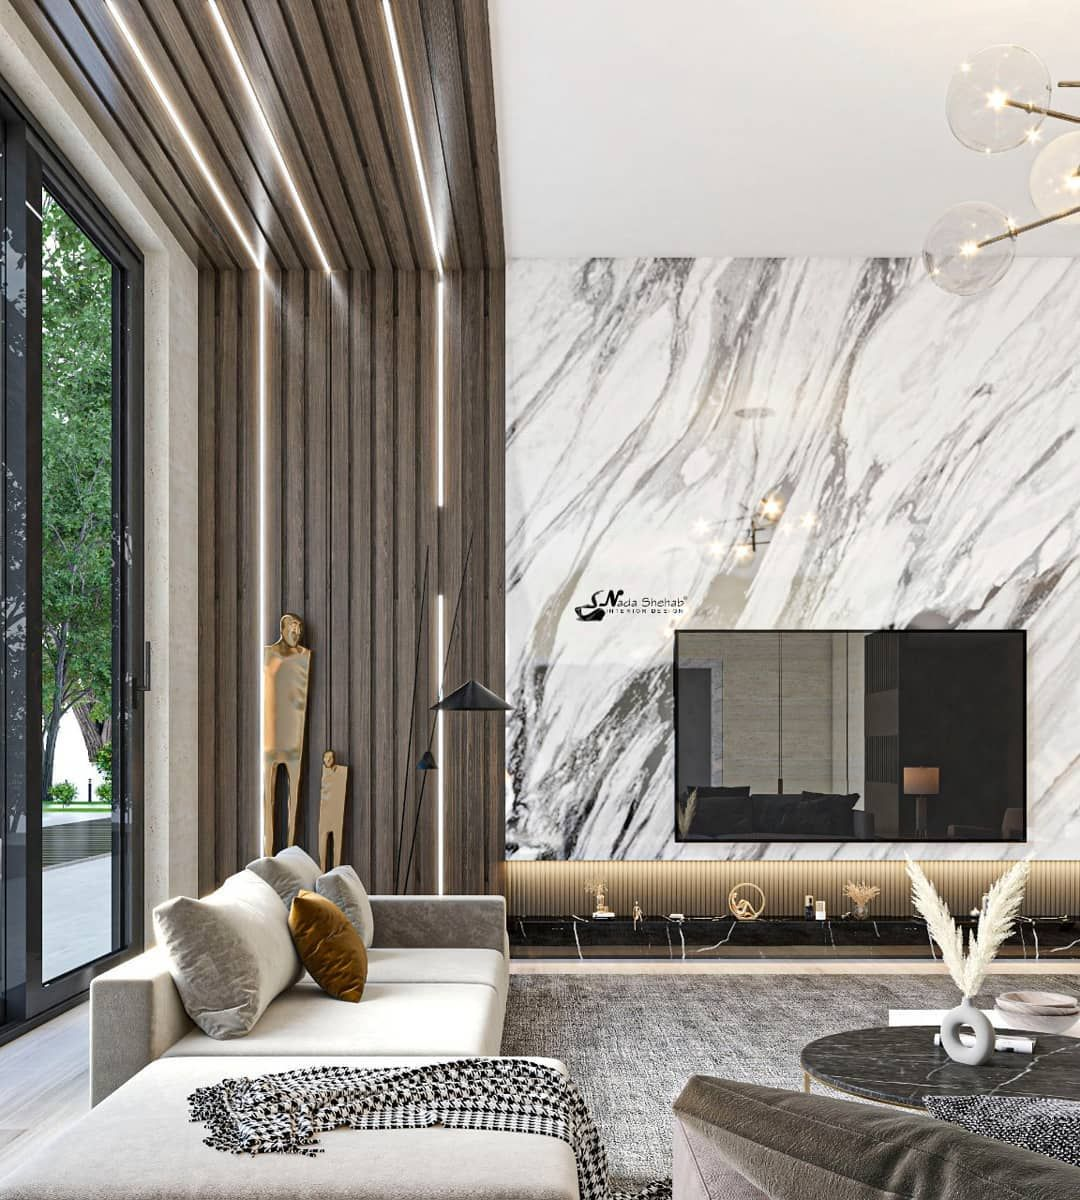 Nada Shehab Designs On Instagram Form Our New Work Contemporary Living Space Design And Visualiza Contemporary Living Spaces Space Design Contemporary Living New contemporary living room